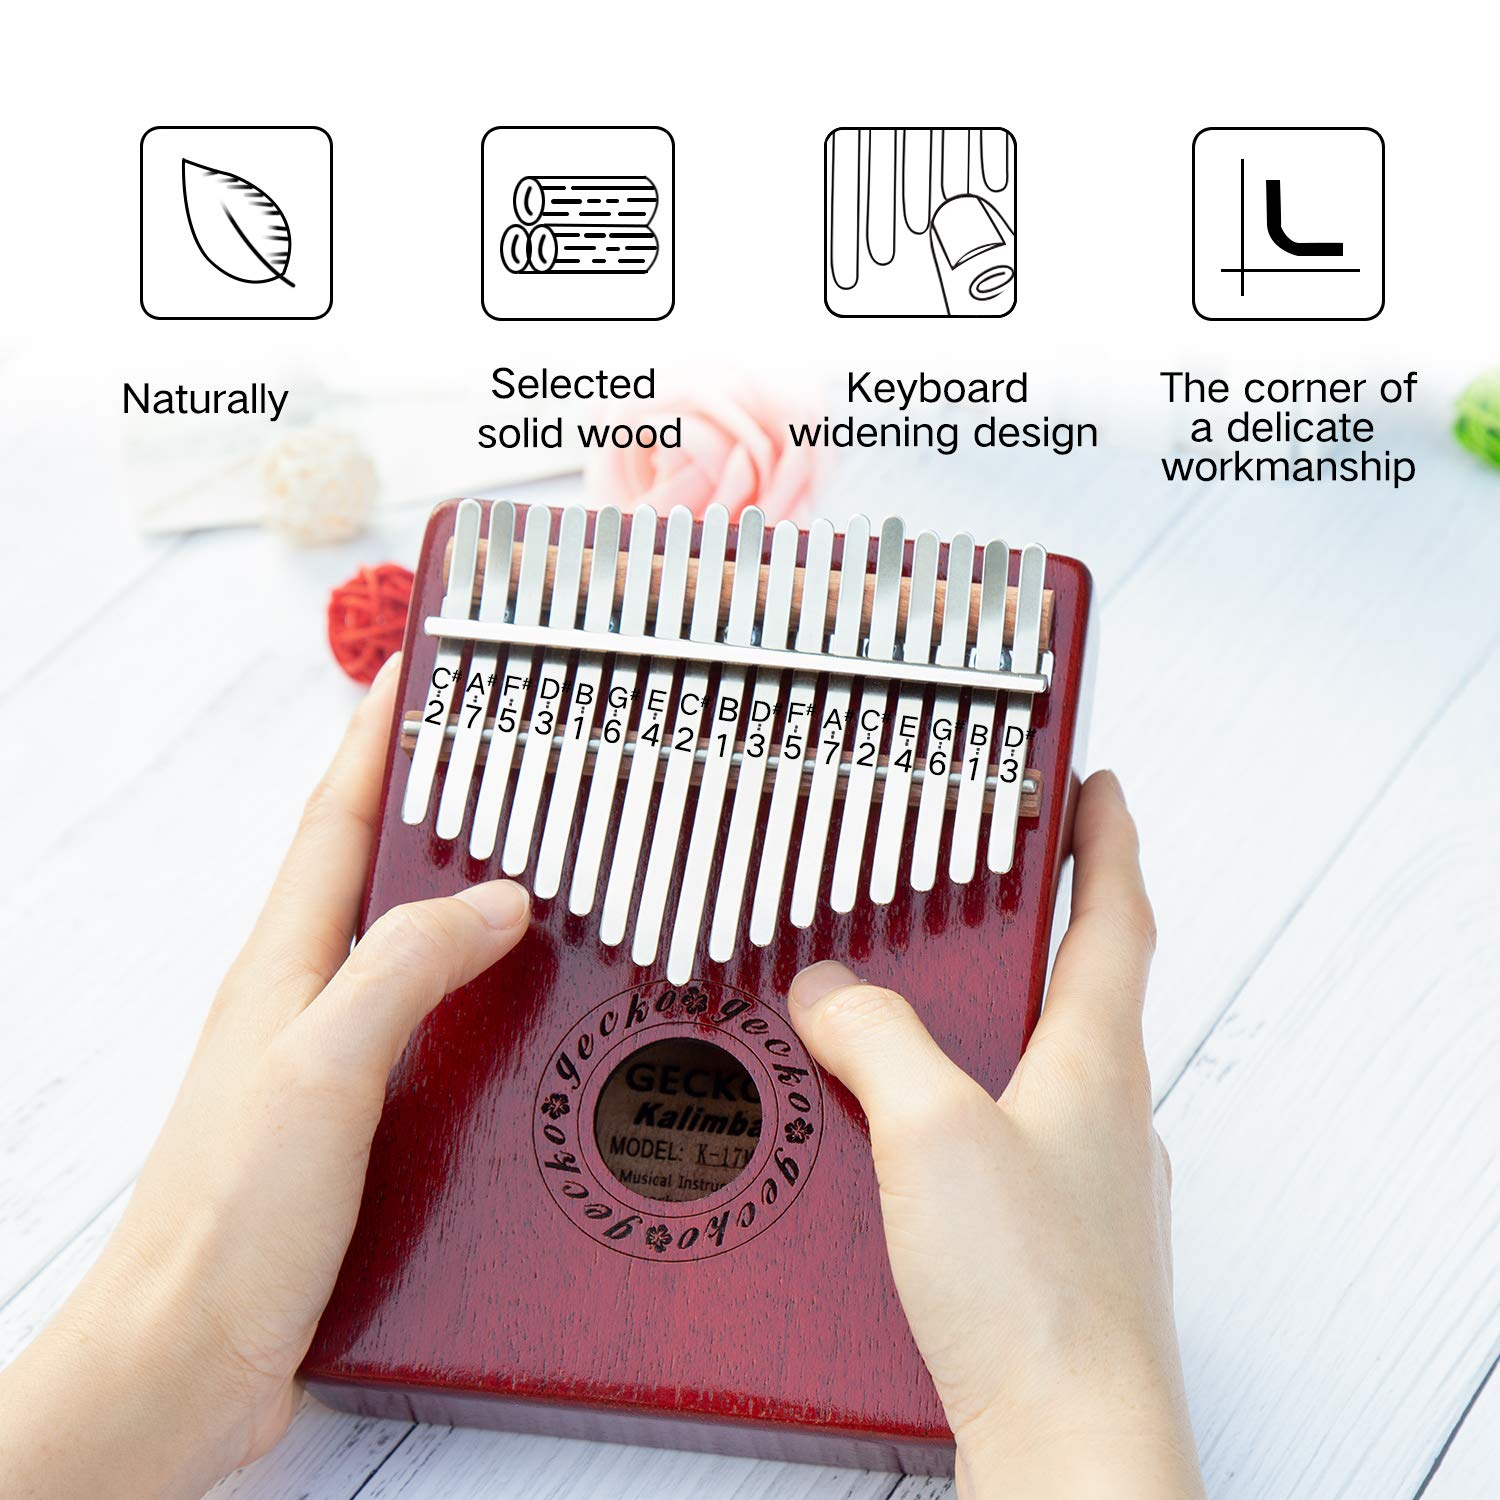 GECKO Kalimba 17 Keys Wide Key Thumb Piano builts-in EVA high-Performance Protective Box, Tuning Hammer and Study Instruction.K17MA by GECKO (Image #6)